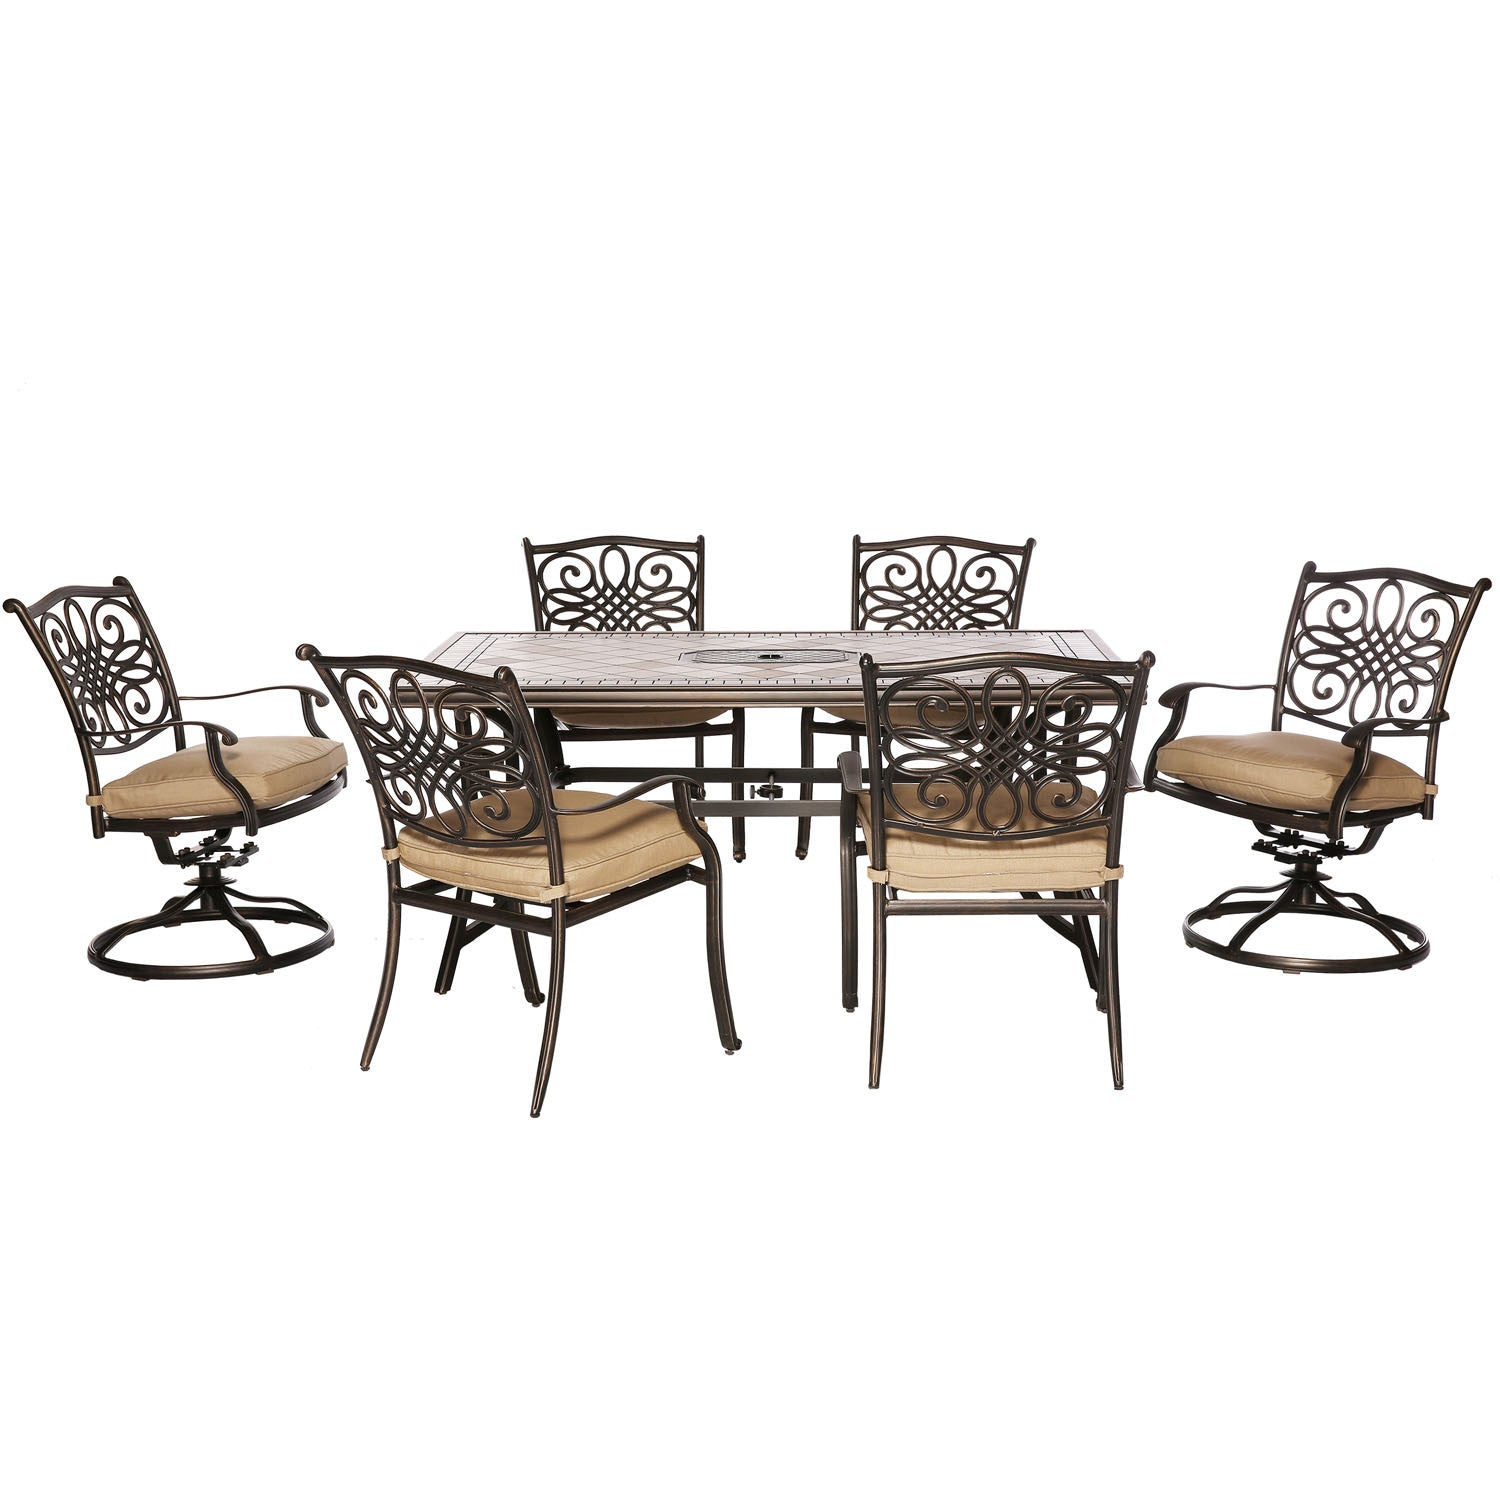 4 dining chairs leather monaco7pc dining set 40x68